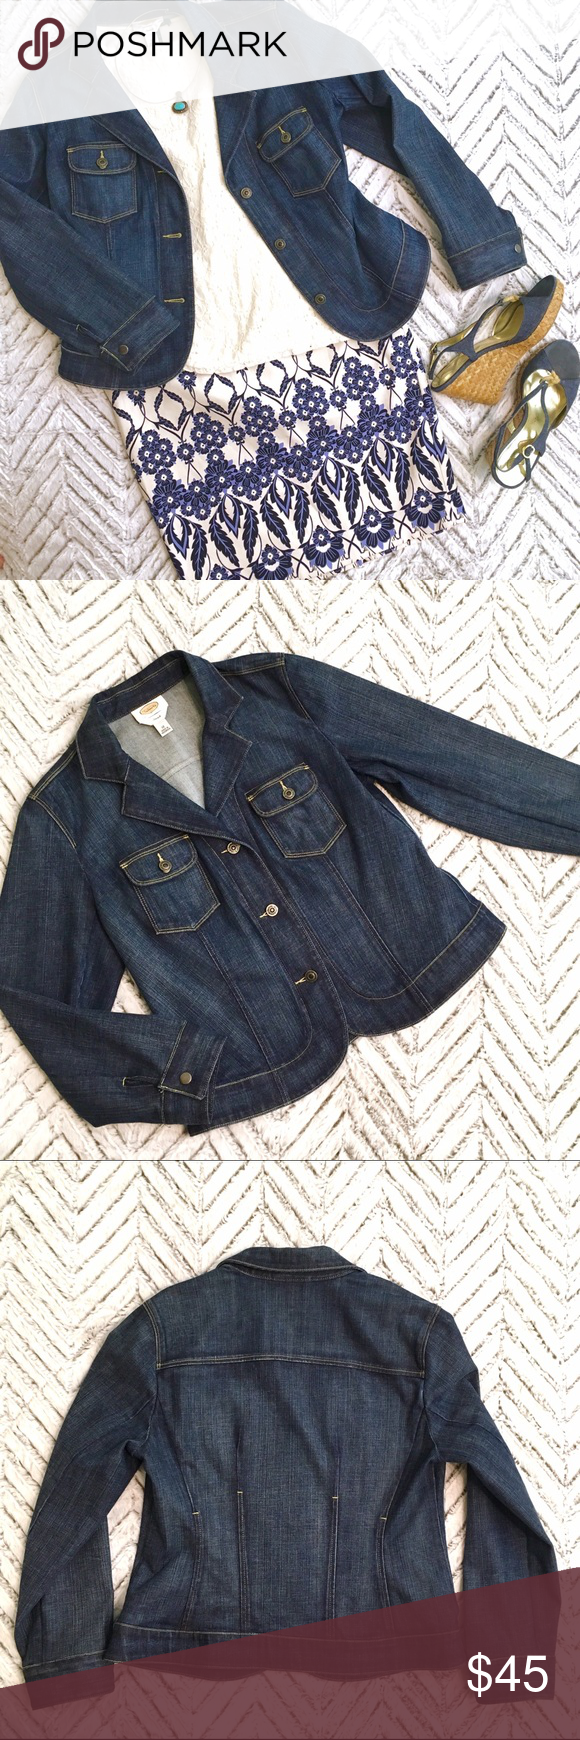 Talbot's Stretch Jean Jacket, Size 12 Beautiful Like New Talbot's Stretch Jean Jacket, Size 12. Lovely shaping seams, two front pockets, button closure. Talbots Jackets & Coats Jean Jackets